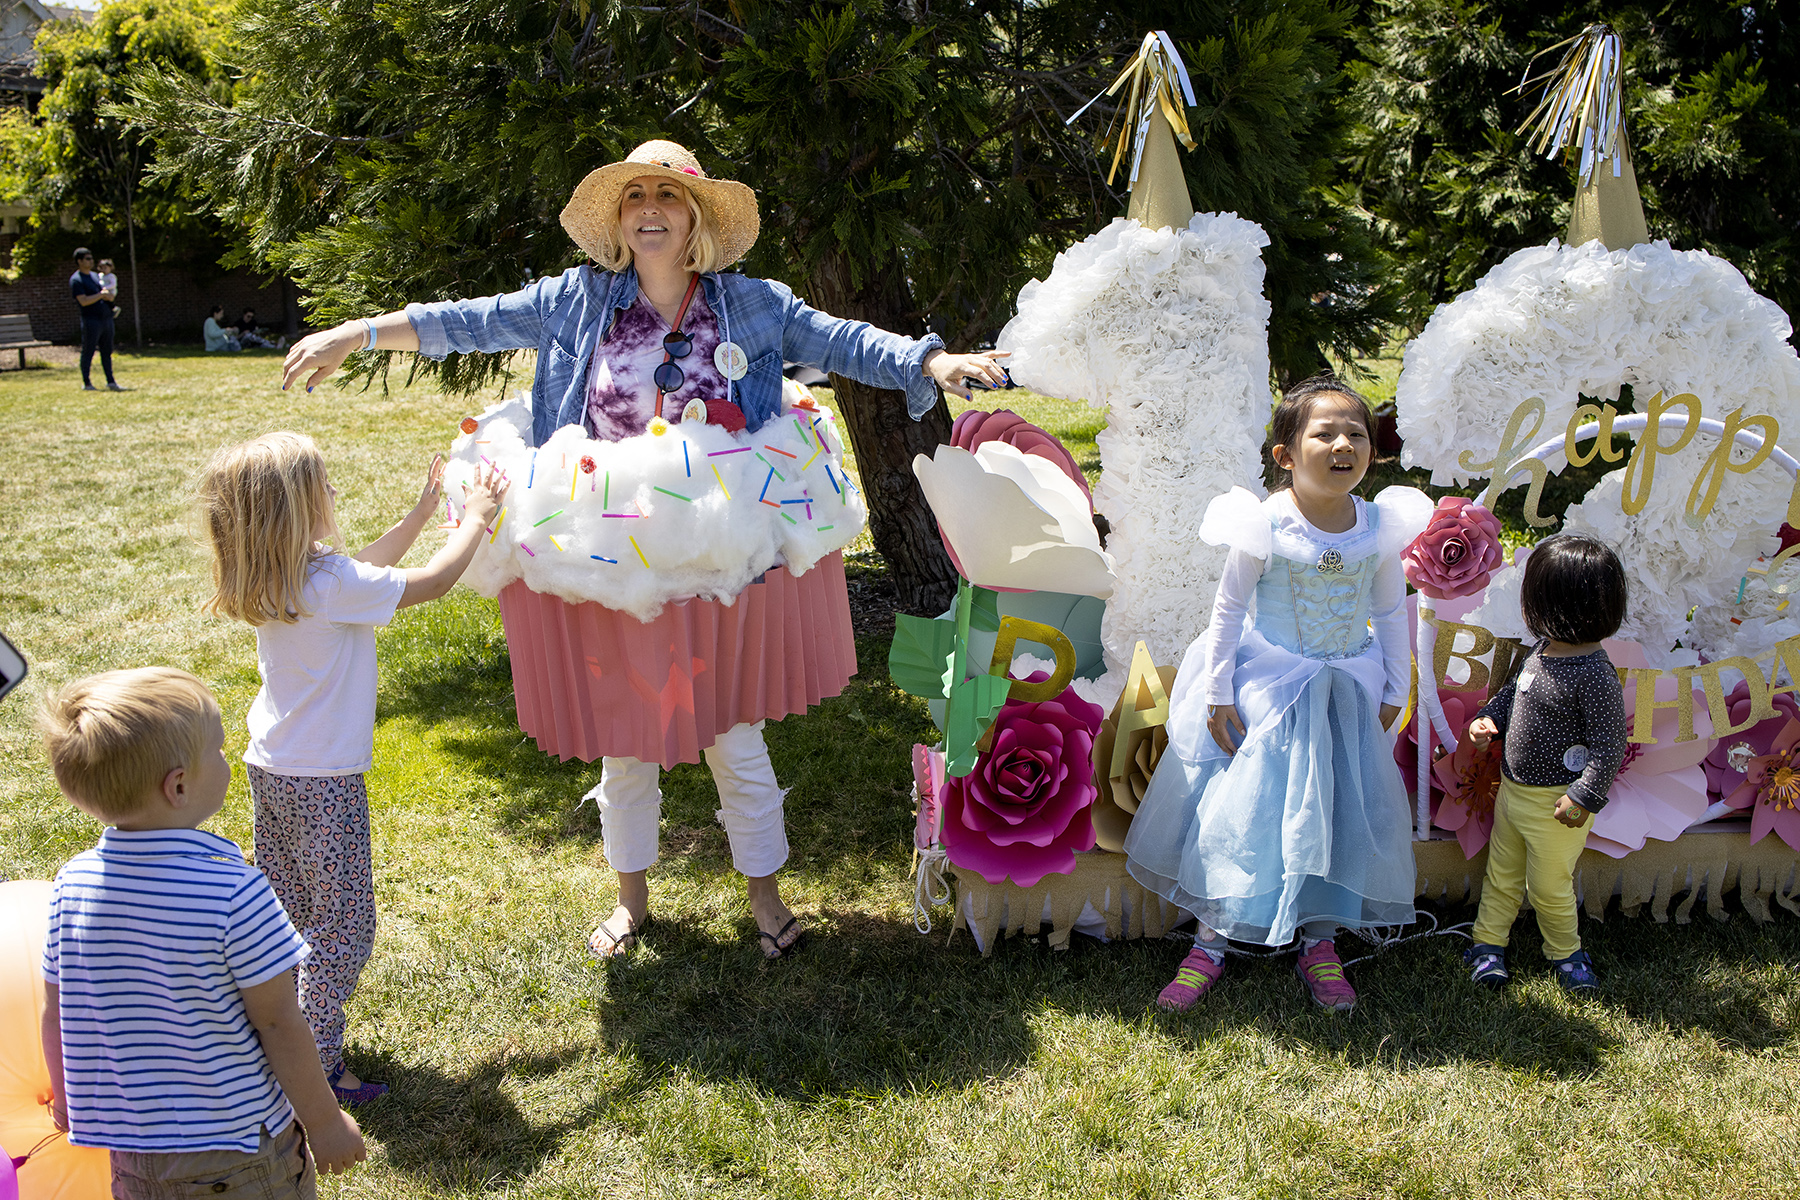 Katy Hoogendyk poses for a photograph in a cupcake costume that was made for the May Fete Parade to celebrate the city's 125th anniversary in Palo Alto, Calif., on May 5, 2019.